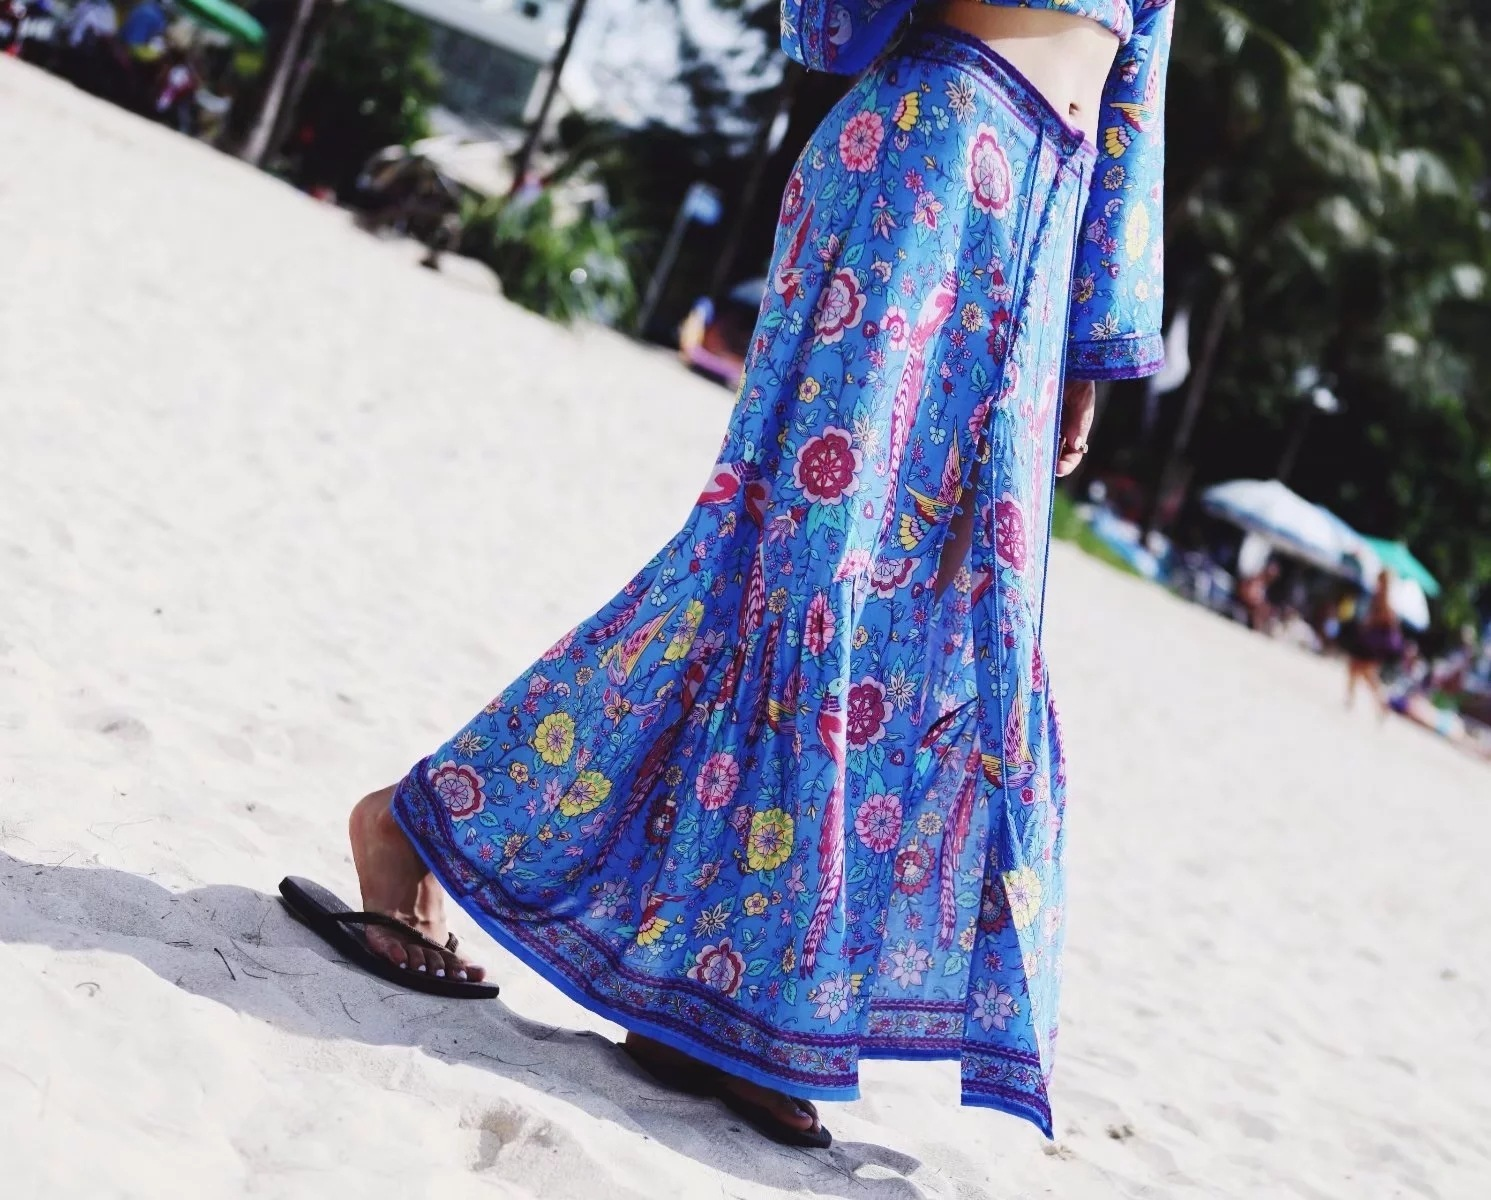 Floral Printed Boho Long Women Skirt 2019 Hot High Waist Beach Maxi Holiday Chic Woman Skirts Fashion Tassel A Line Female Saia in Skirts from Women 39 s Clothing